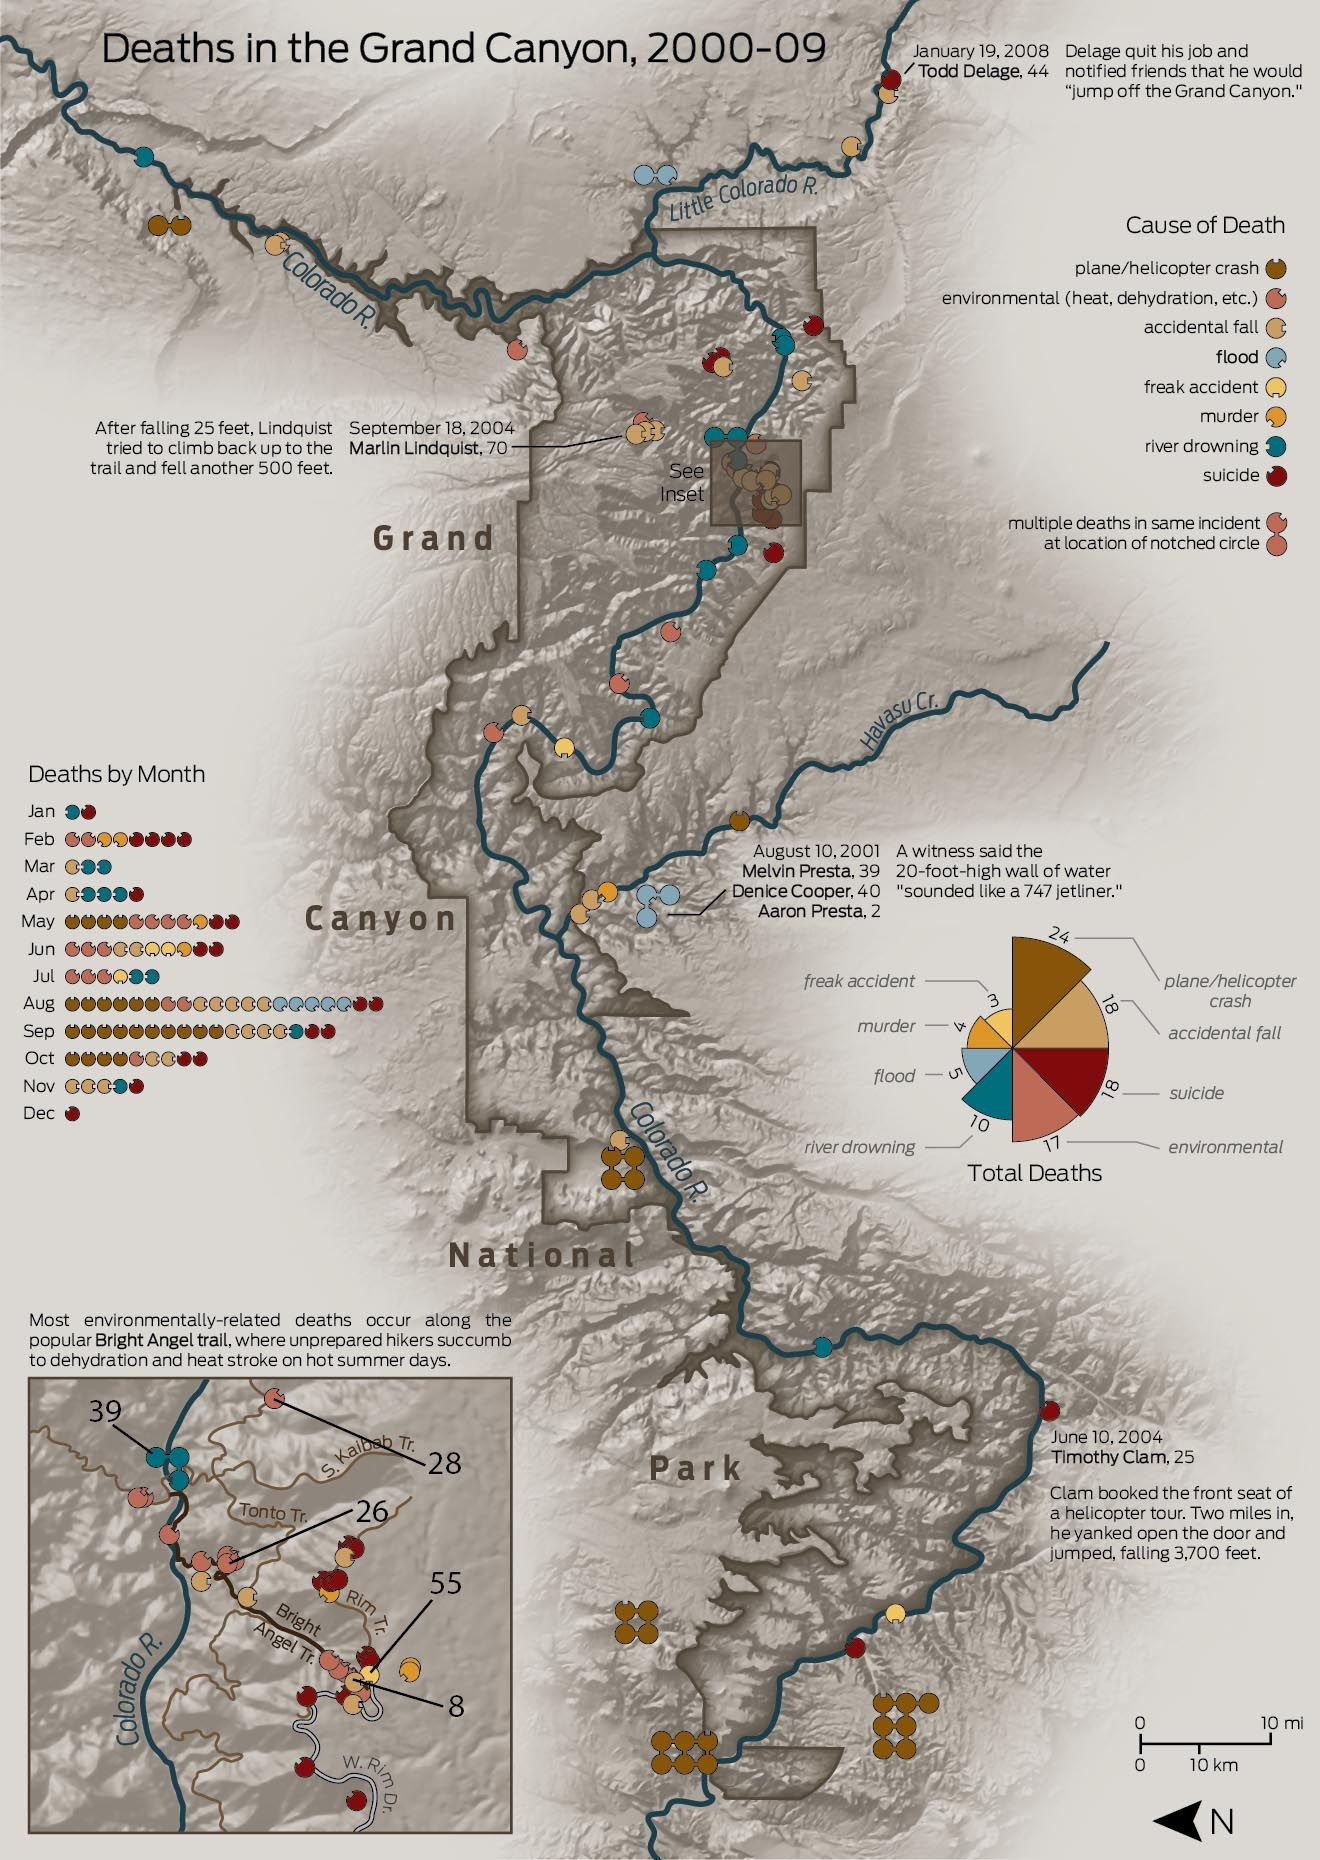 Map of Deaths in the Grand Canyon, 200009 Grand canyon